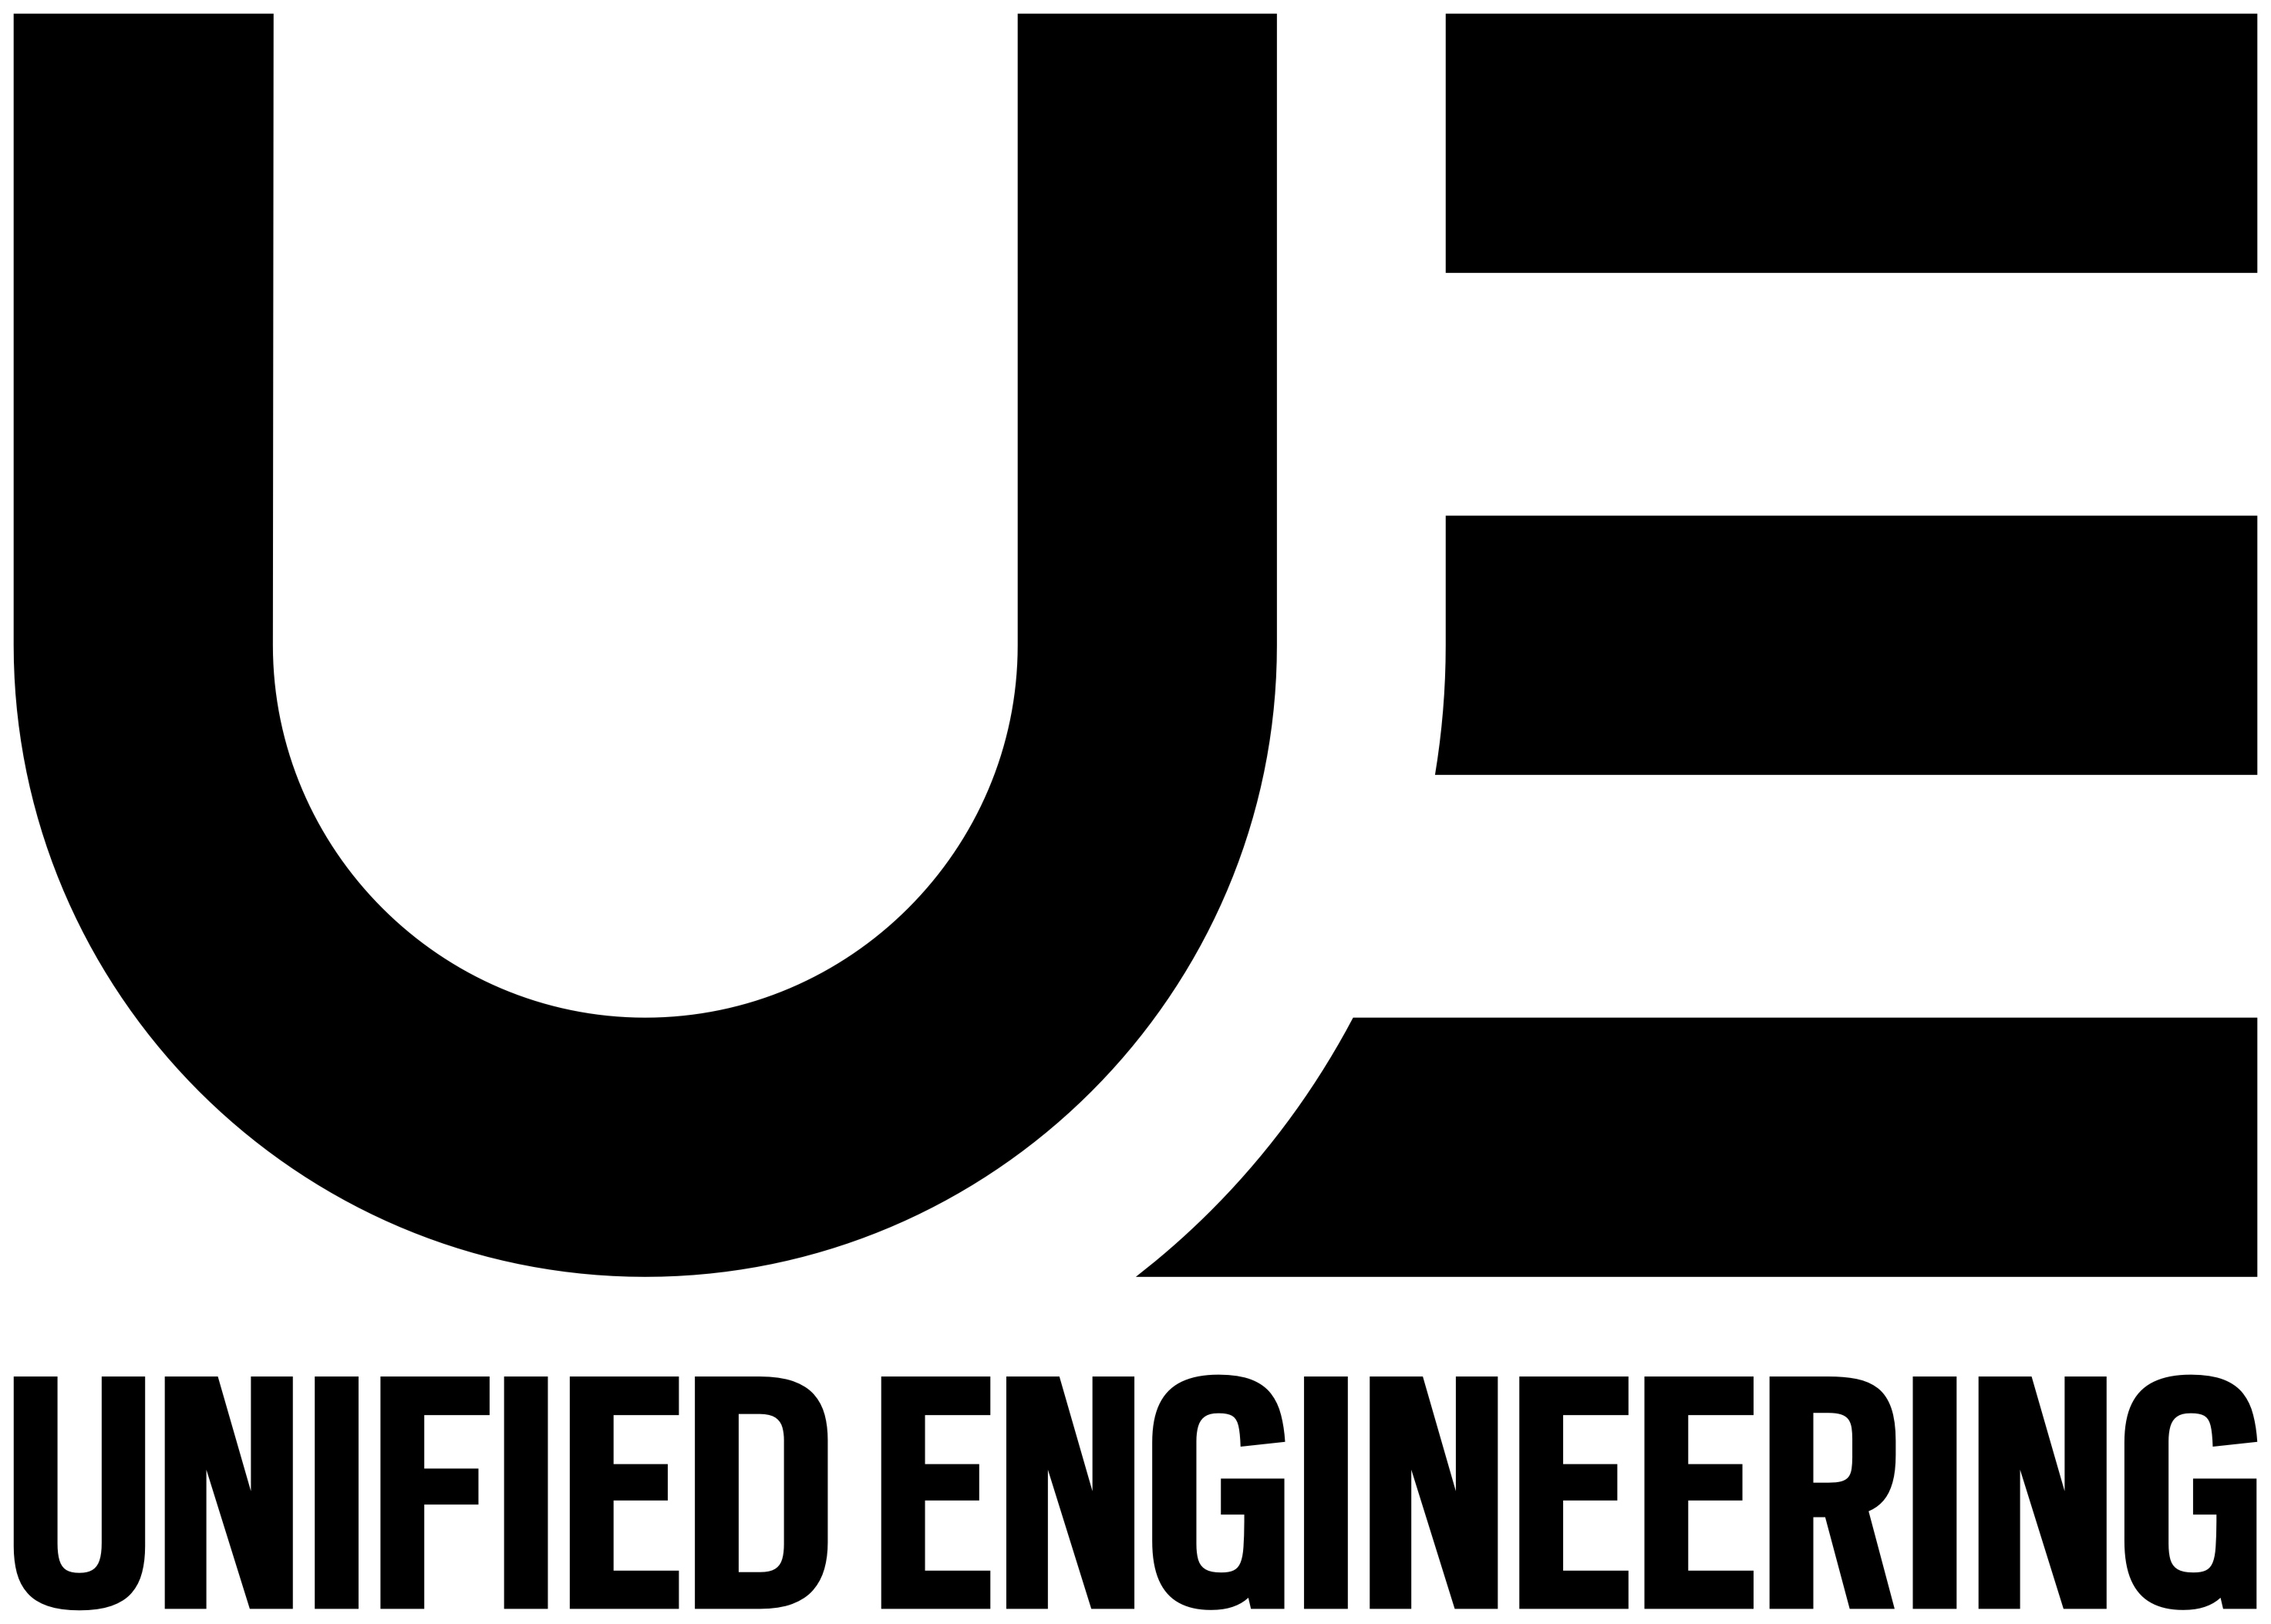 Unified Engineering